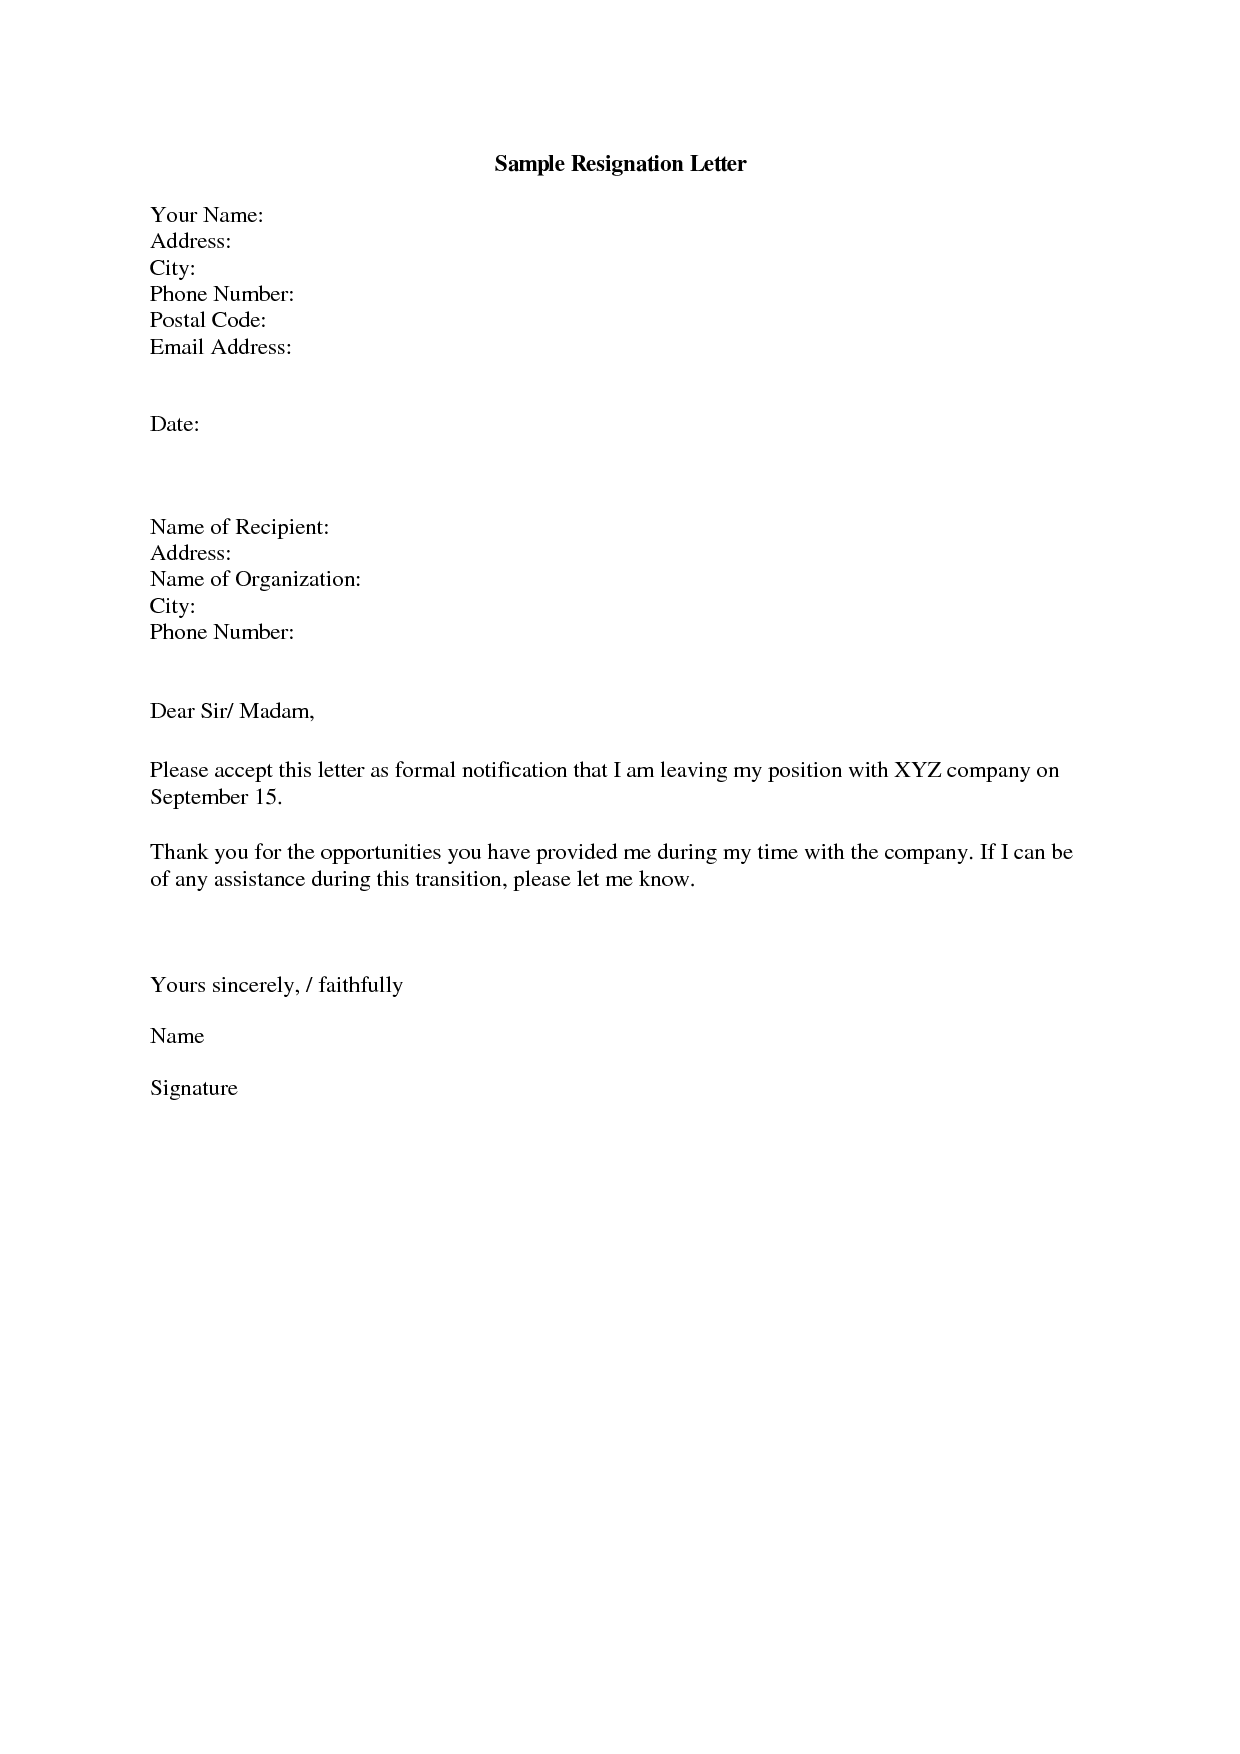 resignation letter pdf professional resume cover letter sample resignation letter pdf sample resignation letter wm libraries job resignation letter sample short and sweet